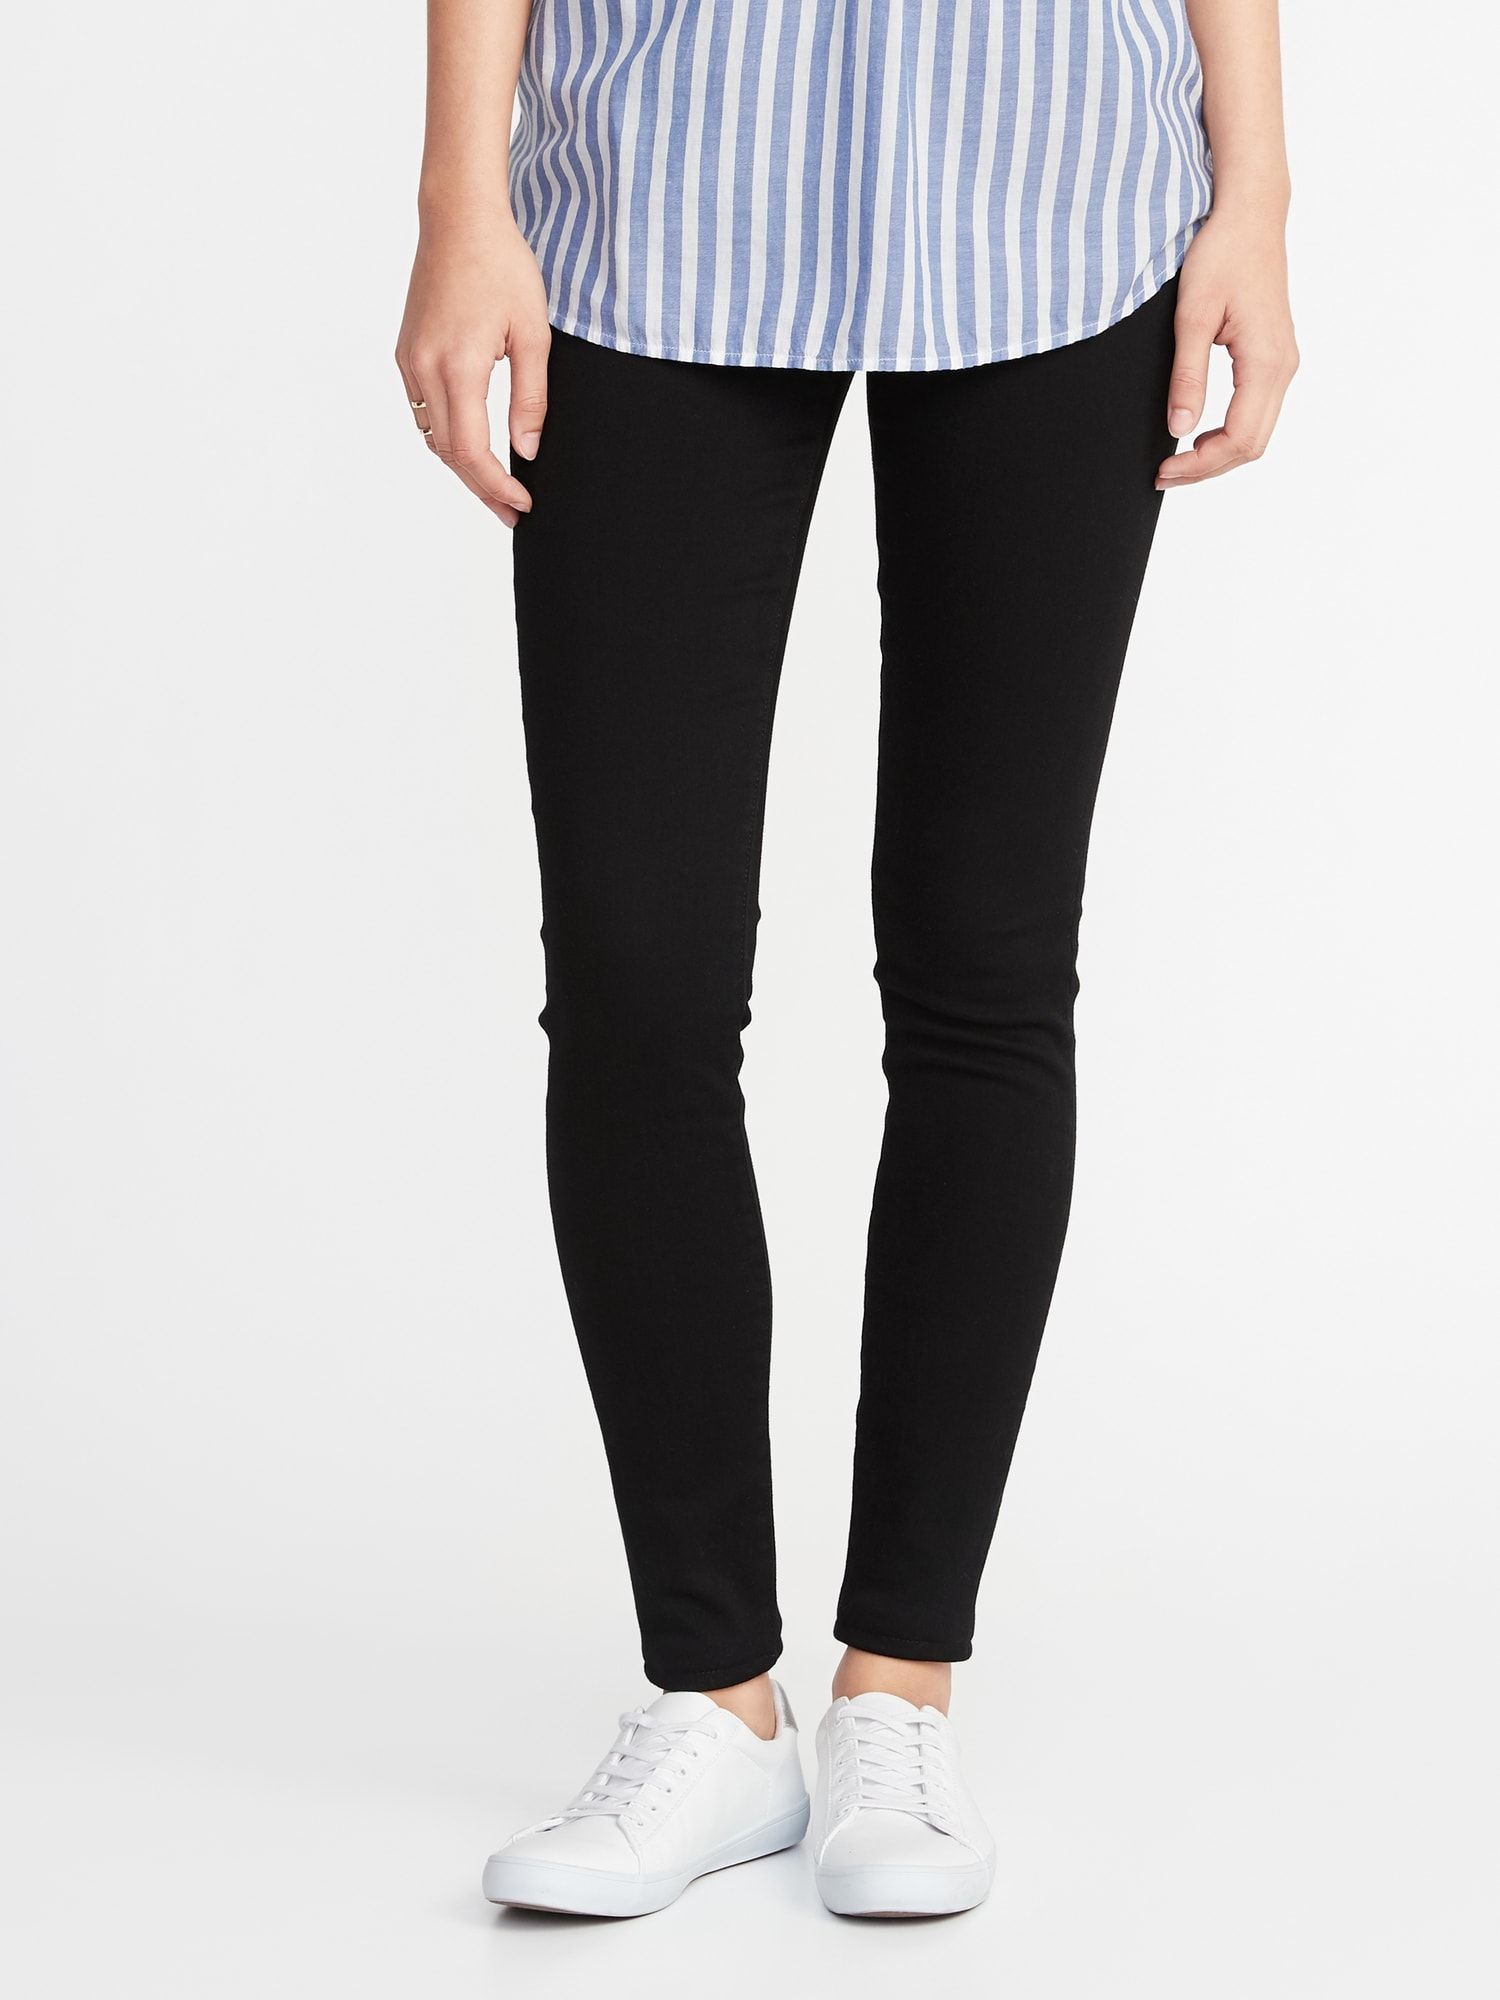 5abd8aa60e7aa Mid-Rise Built-In Warm Rockstar Jeggings for Women | Clothes | Old ...